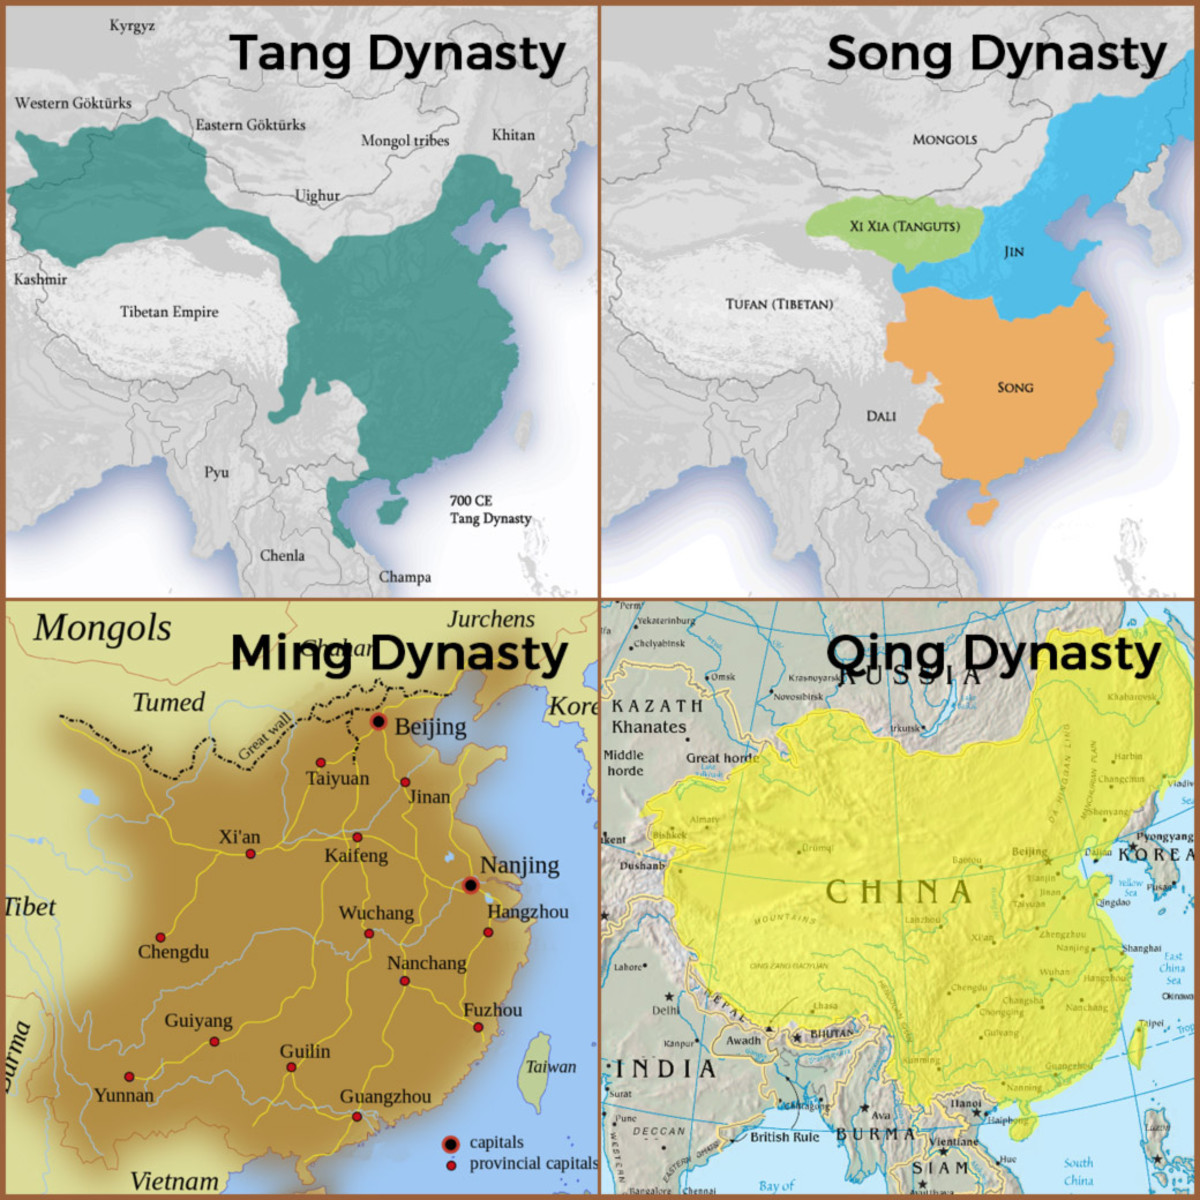 Extent of the Chinese empire during different dynasties